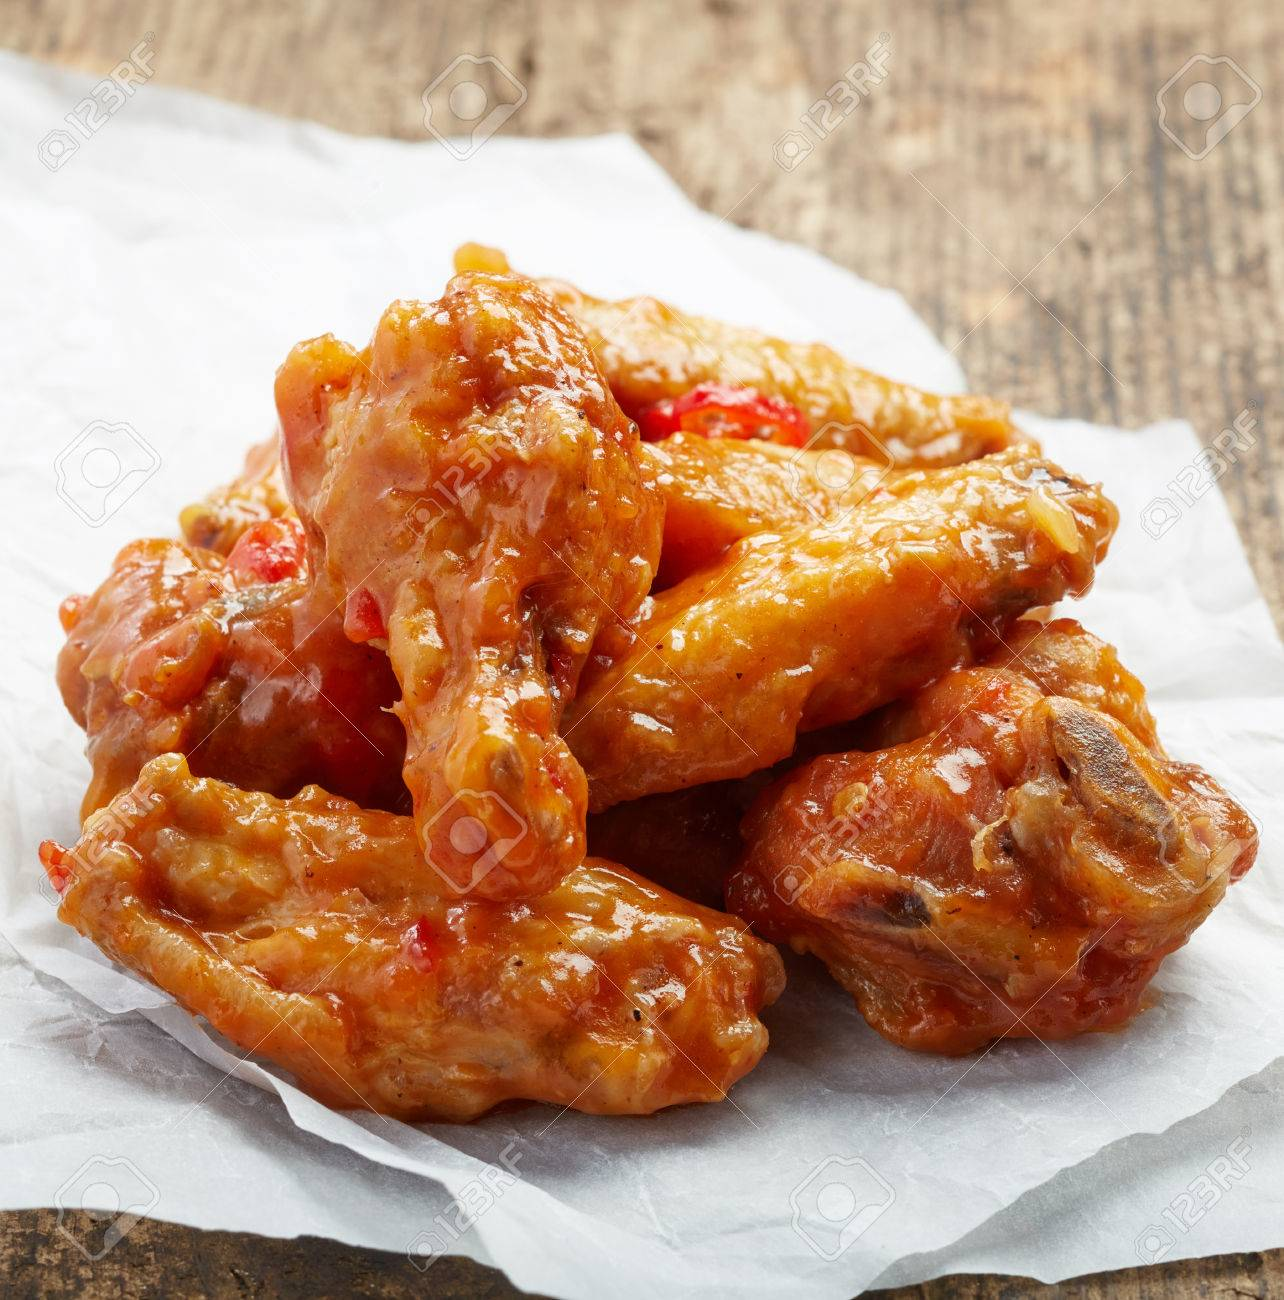 Fried Chicken Wings With Sweet Chili Sauce On White Paper Stock Photo Picture And Royalty Free Image Image 30468686